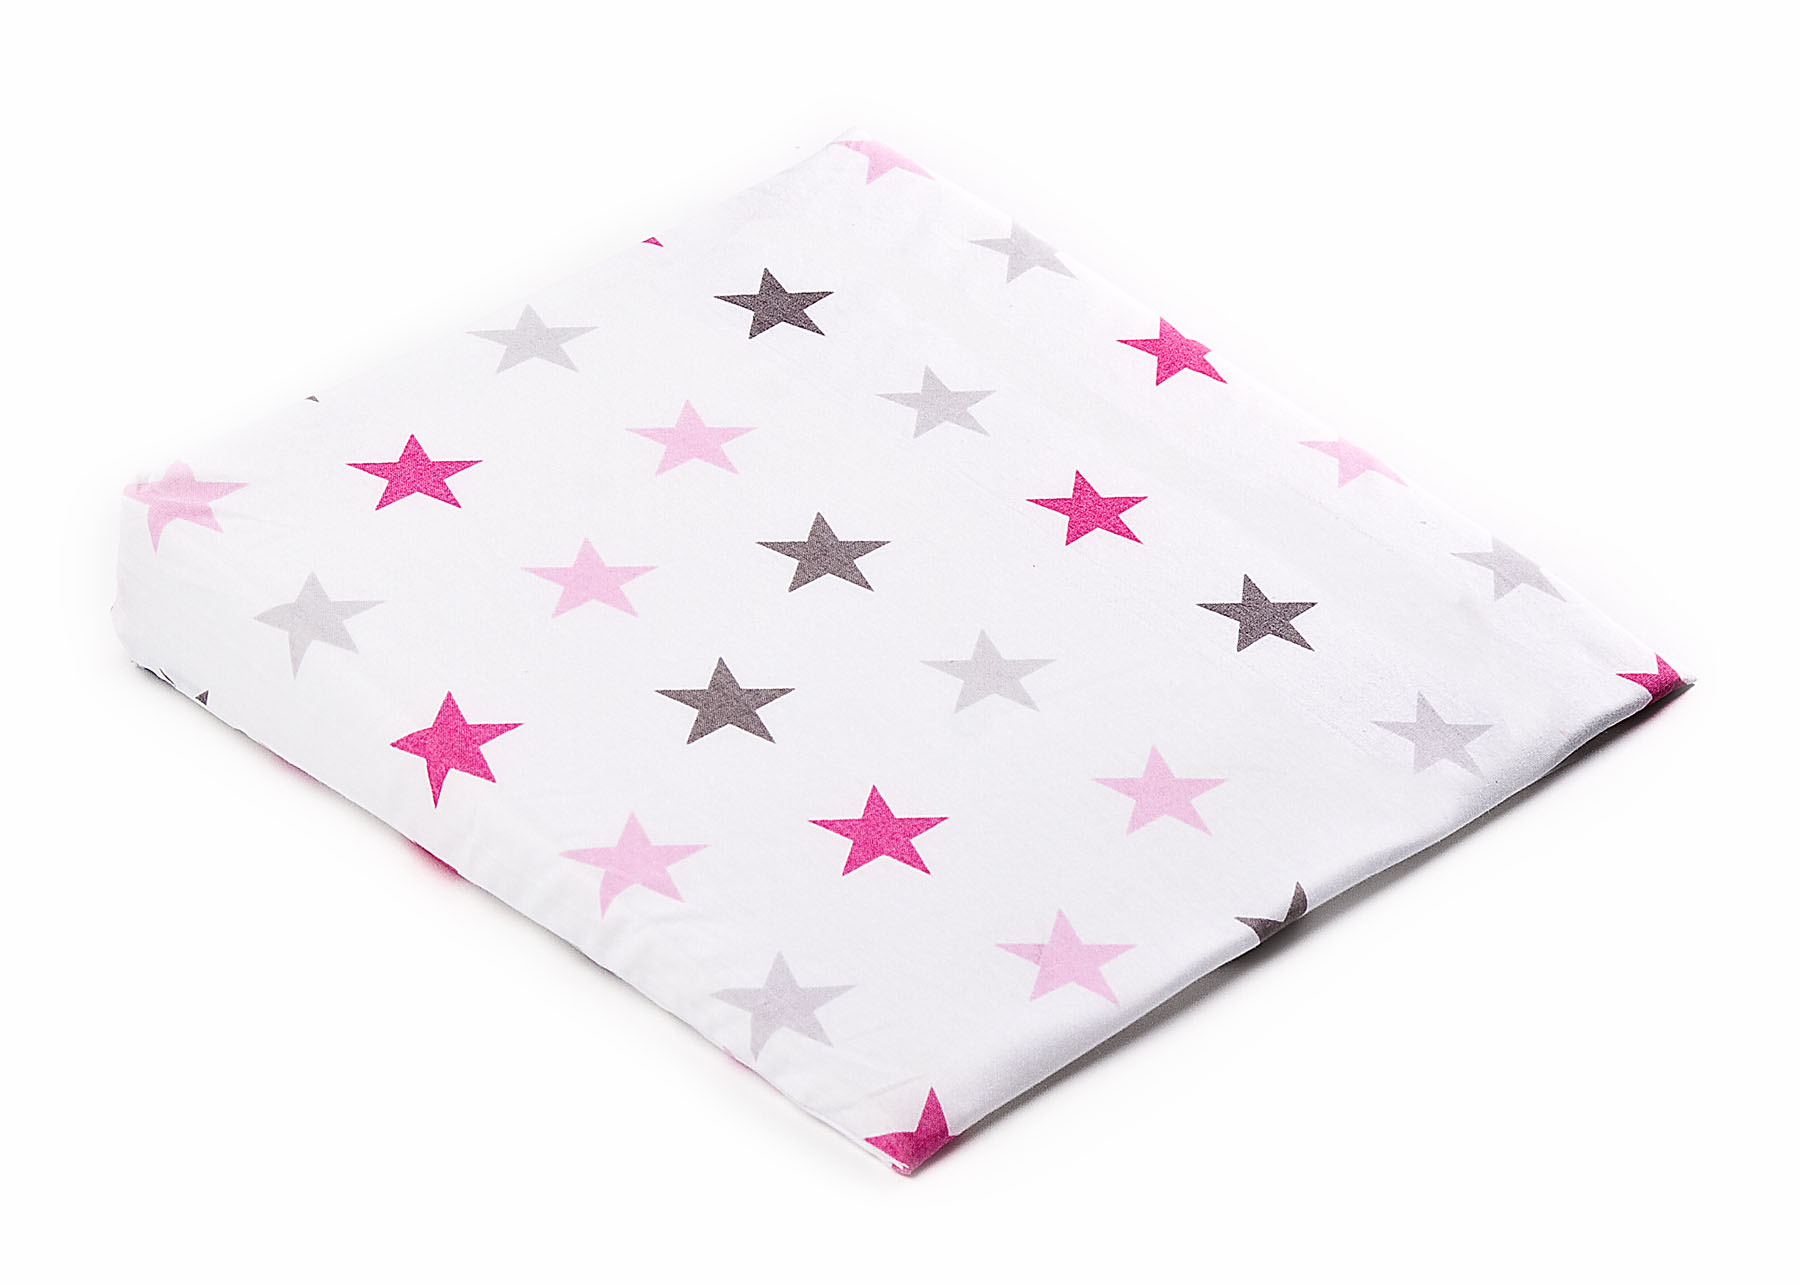 38×30 Wedge Pillowcases – galaxy pink